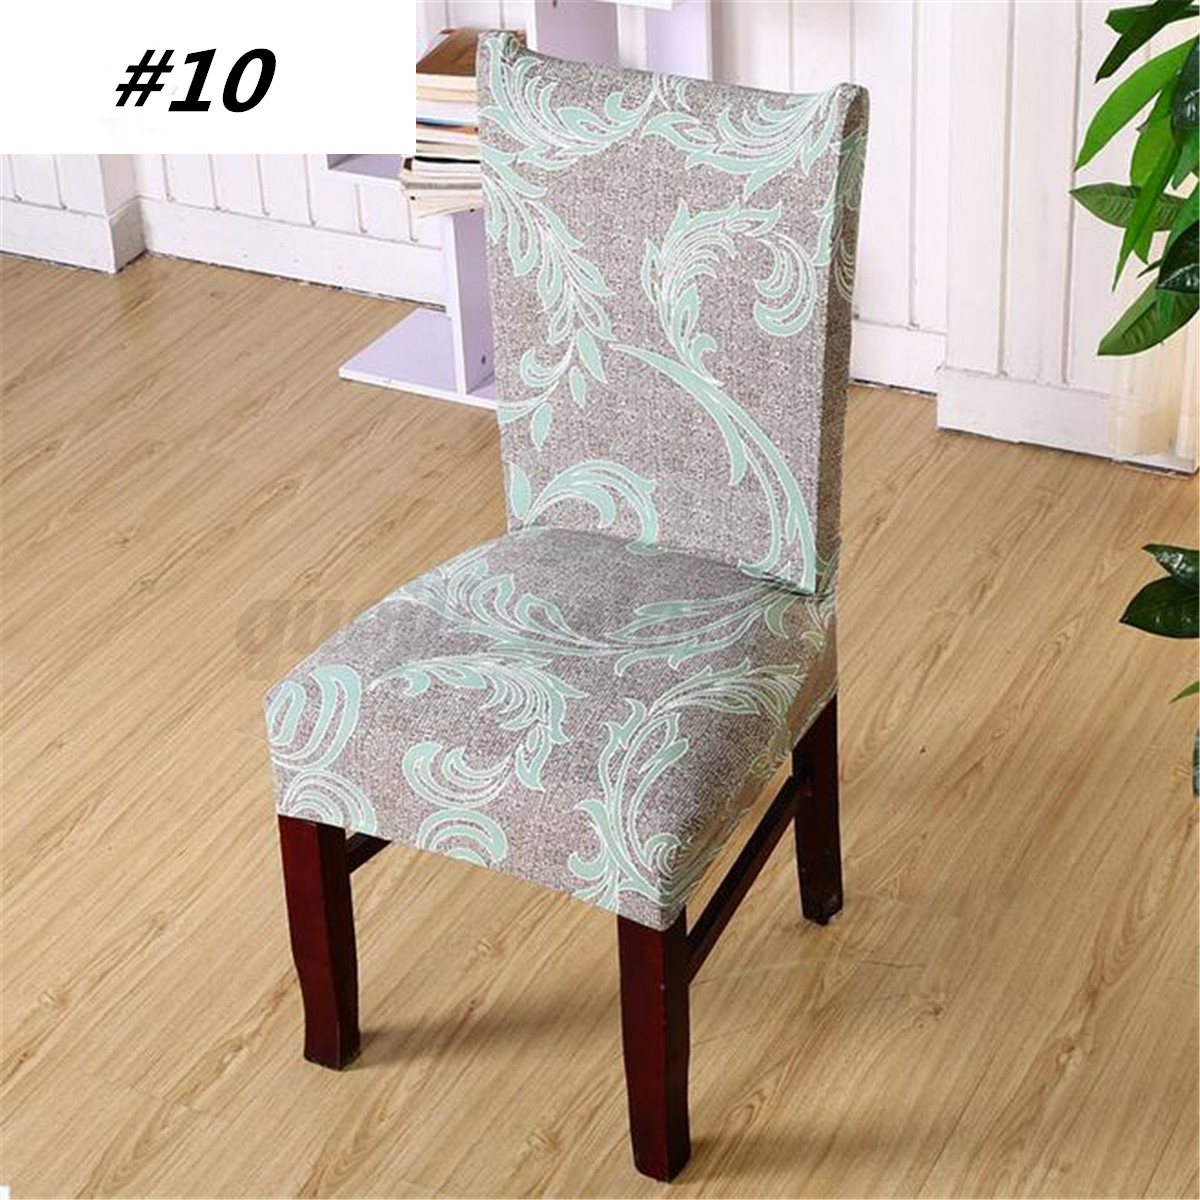 dunelm stretch chair covers office neck support attachment spandex cover seat polyester washable